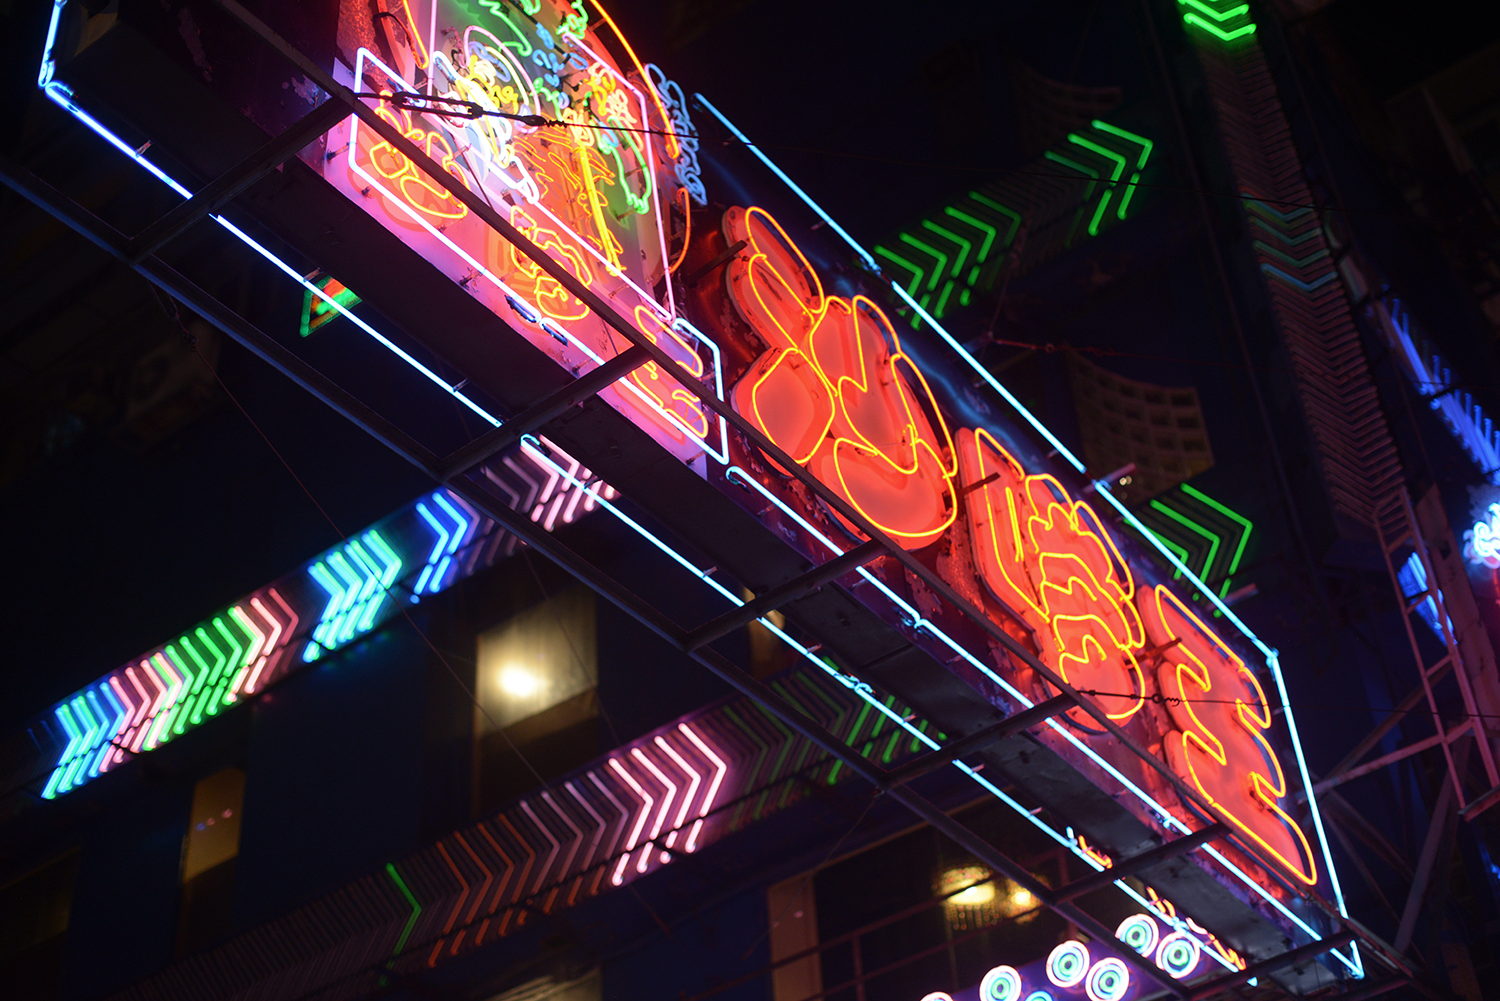 Neon Signs - Hong Kong, China | Night / FOREVERVANNY.com